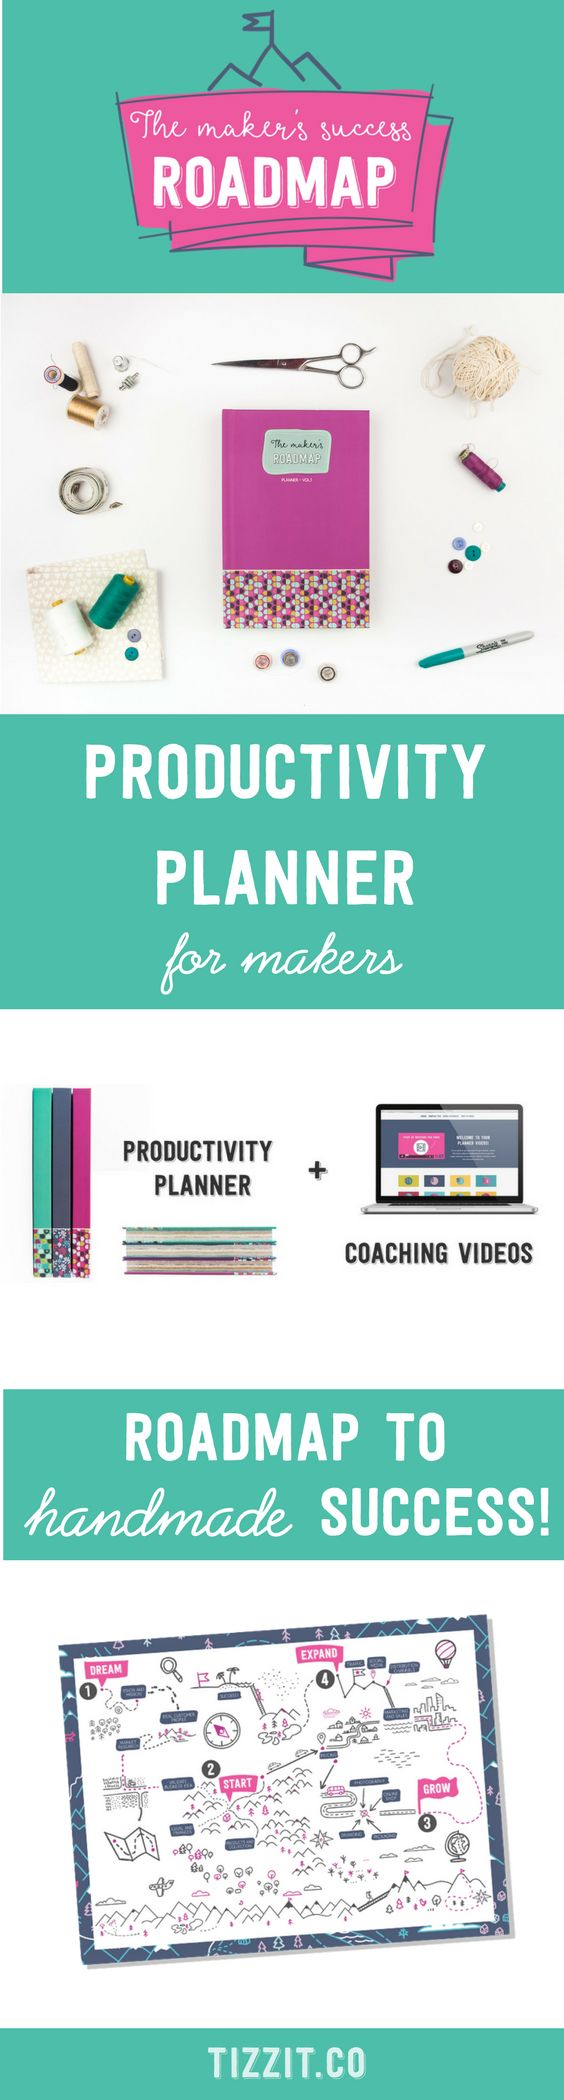 A productivity planner and growth framework for etsy sellers, makers and handmade shop owners. The Maker's Roadmap is designed to help you start, grow and profit from your handmade shop by providing you with: ♥️ A step-by-step plan based on the 4 main stages of handmade business growth, so you know exactly what you need to focus on next; ♥️ An implementation system to finally beat the overwhelm, set goals you can achieve, and be more productive than ever.